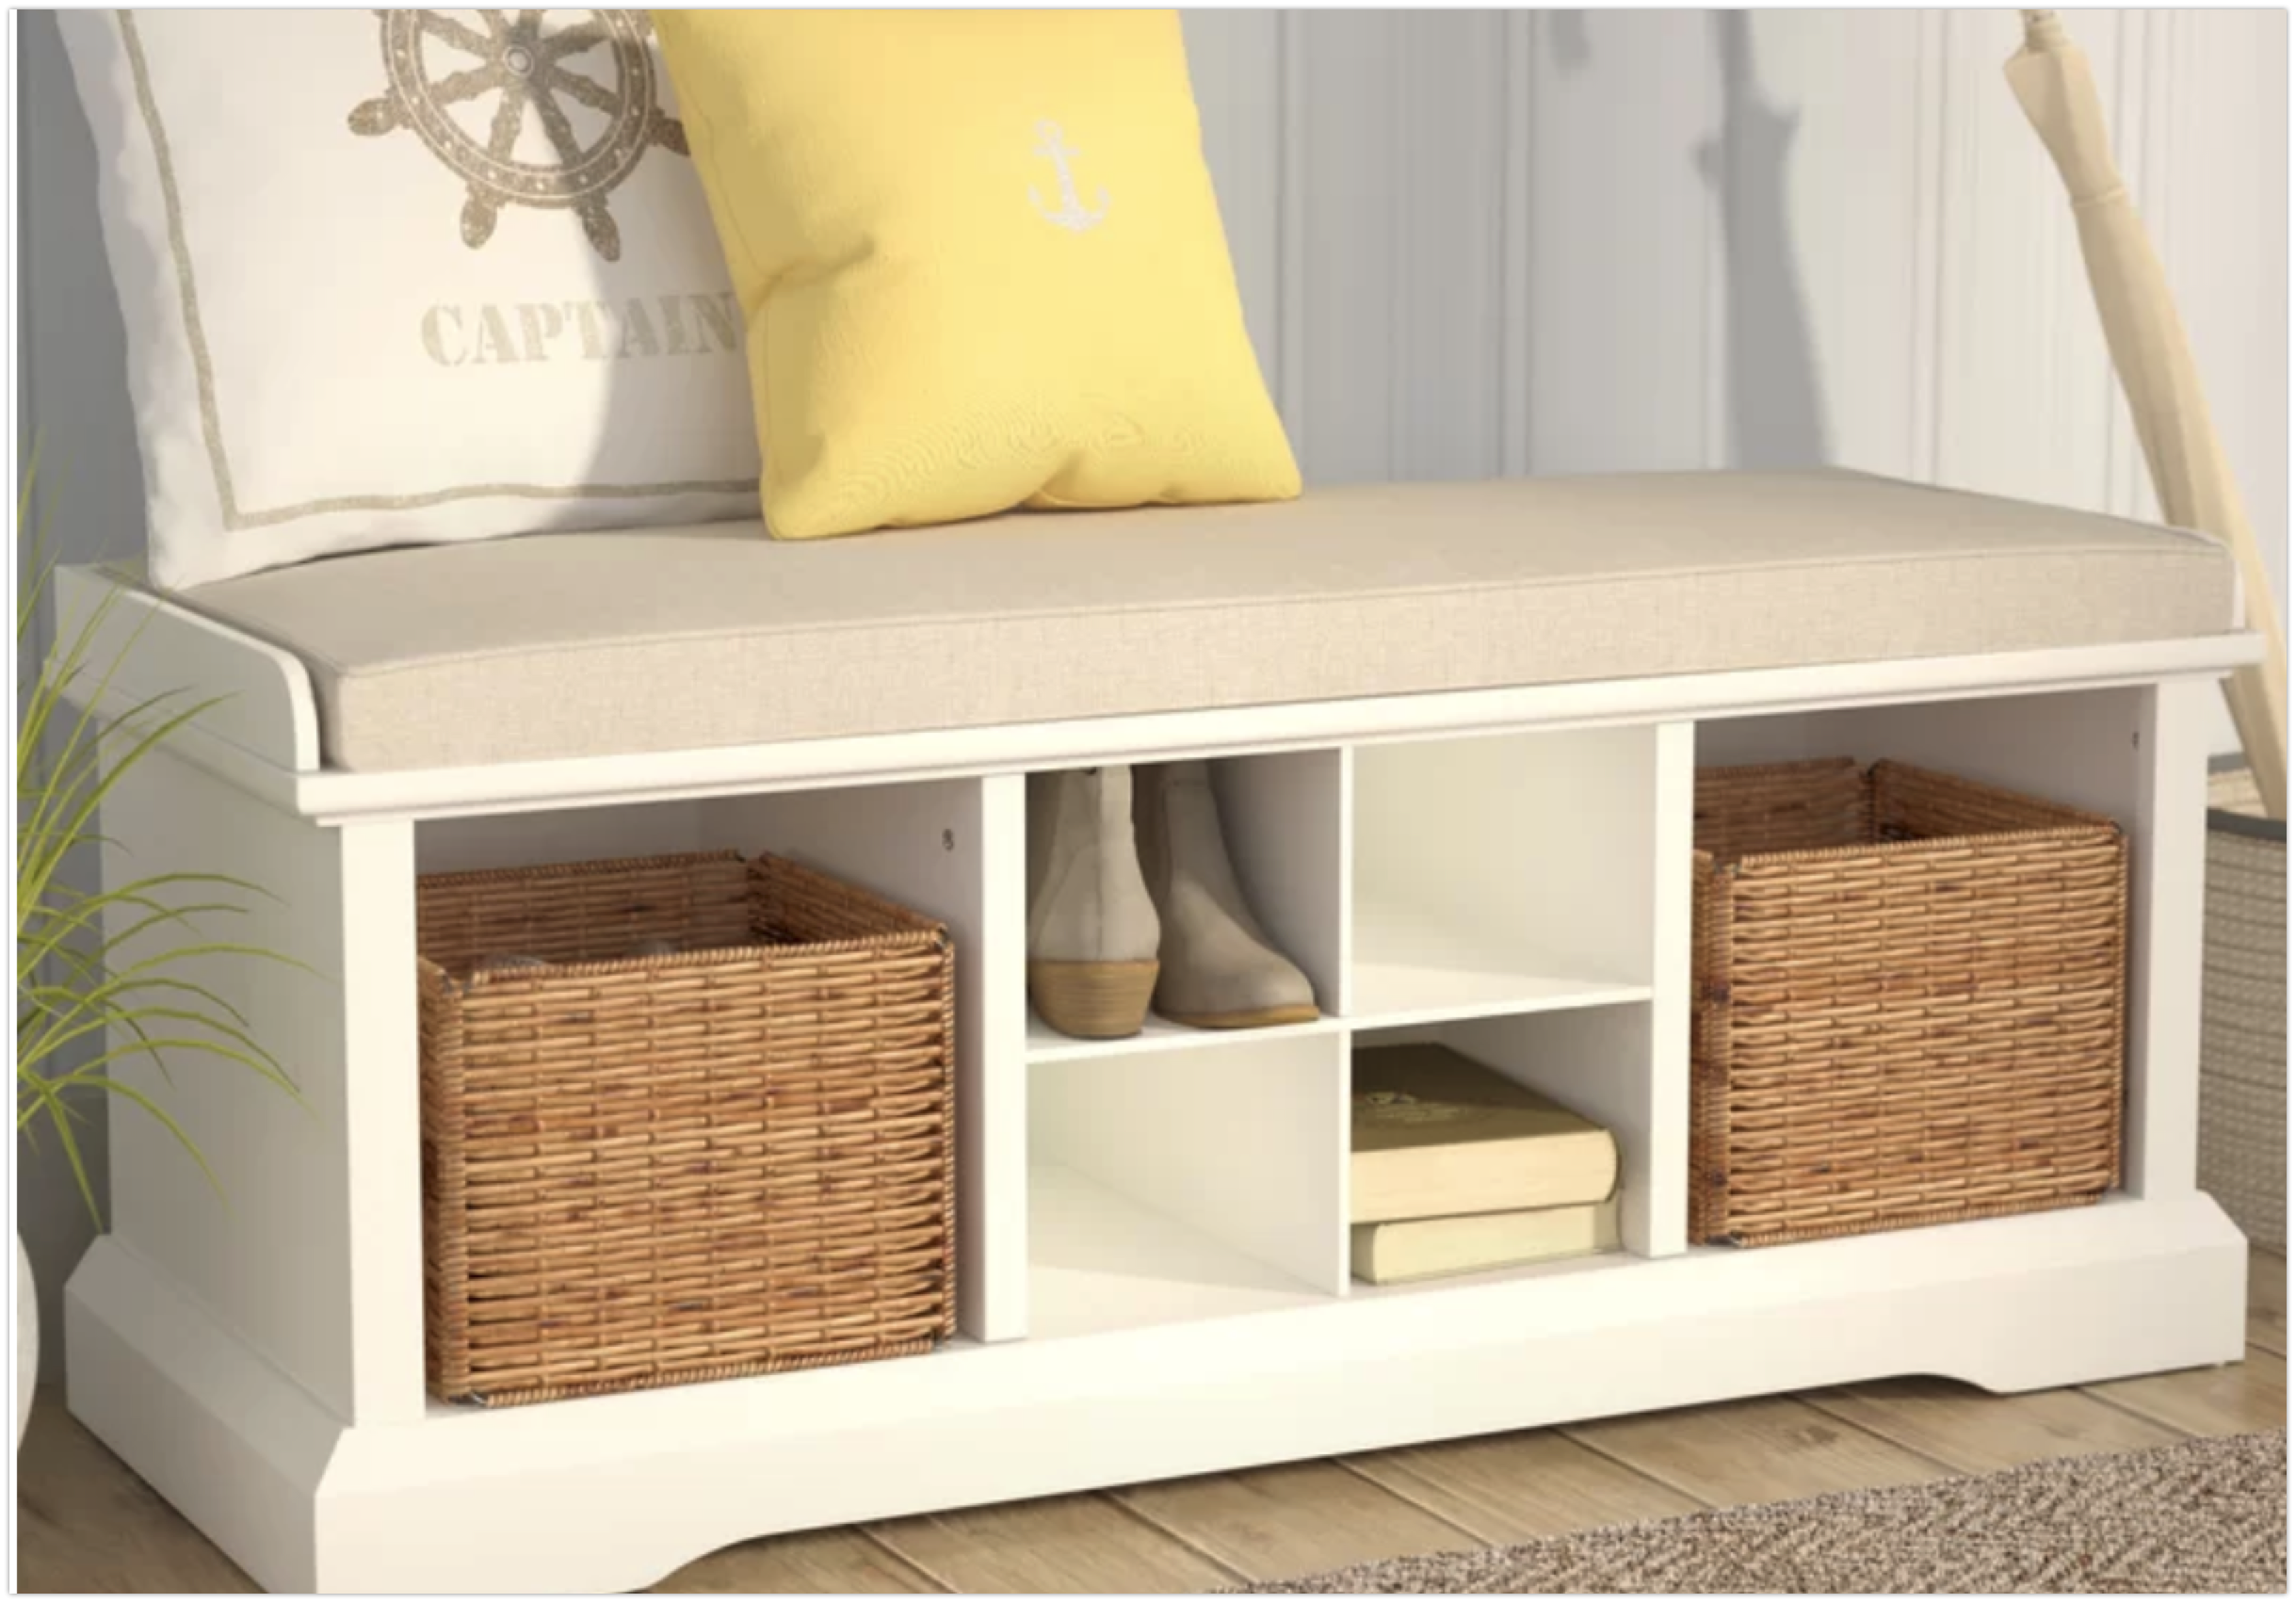 white-rattan-storage-shoe-storage-bench